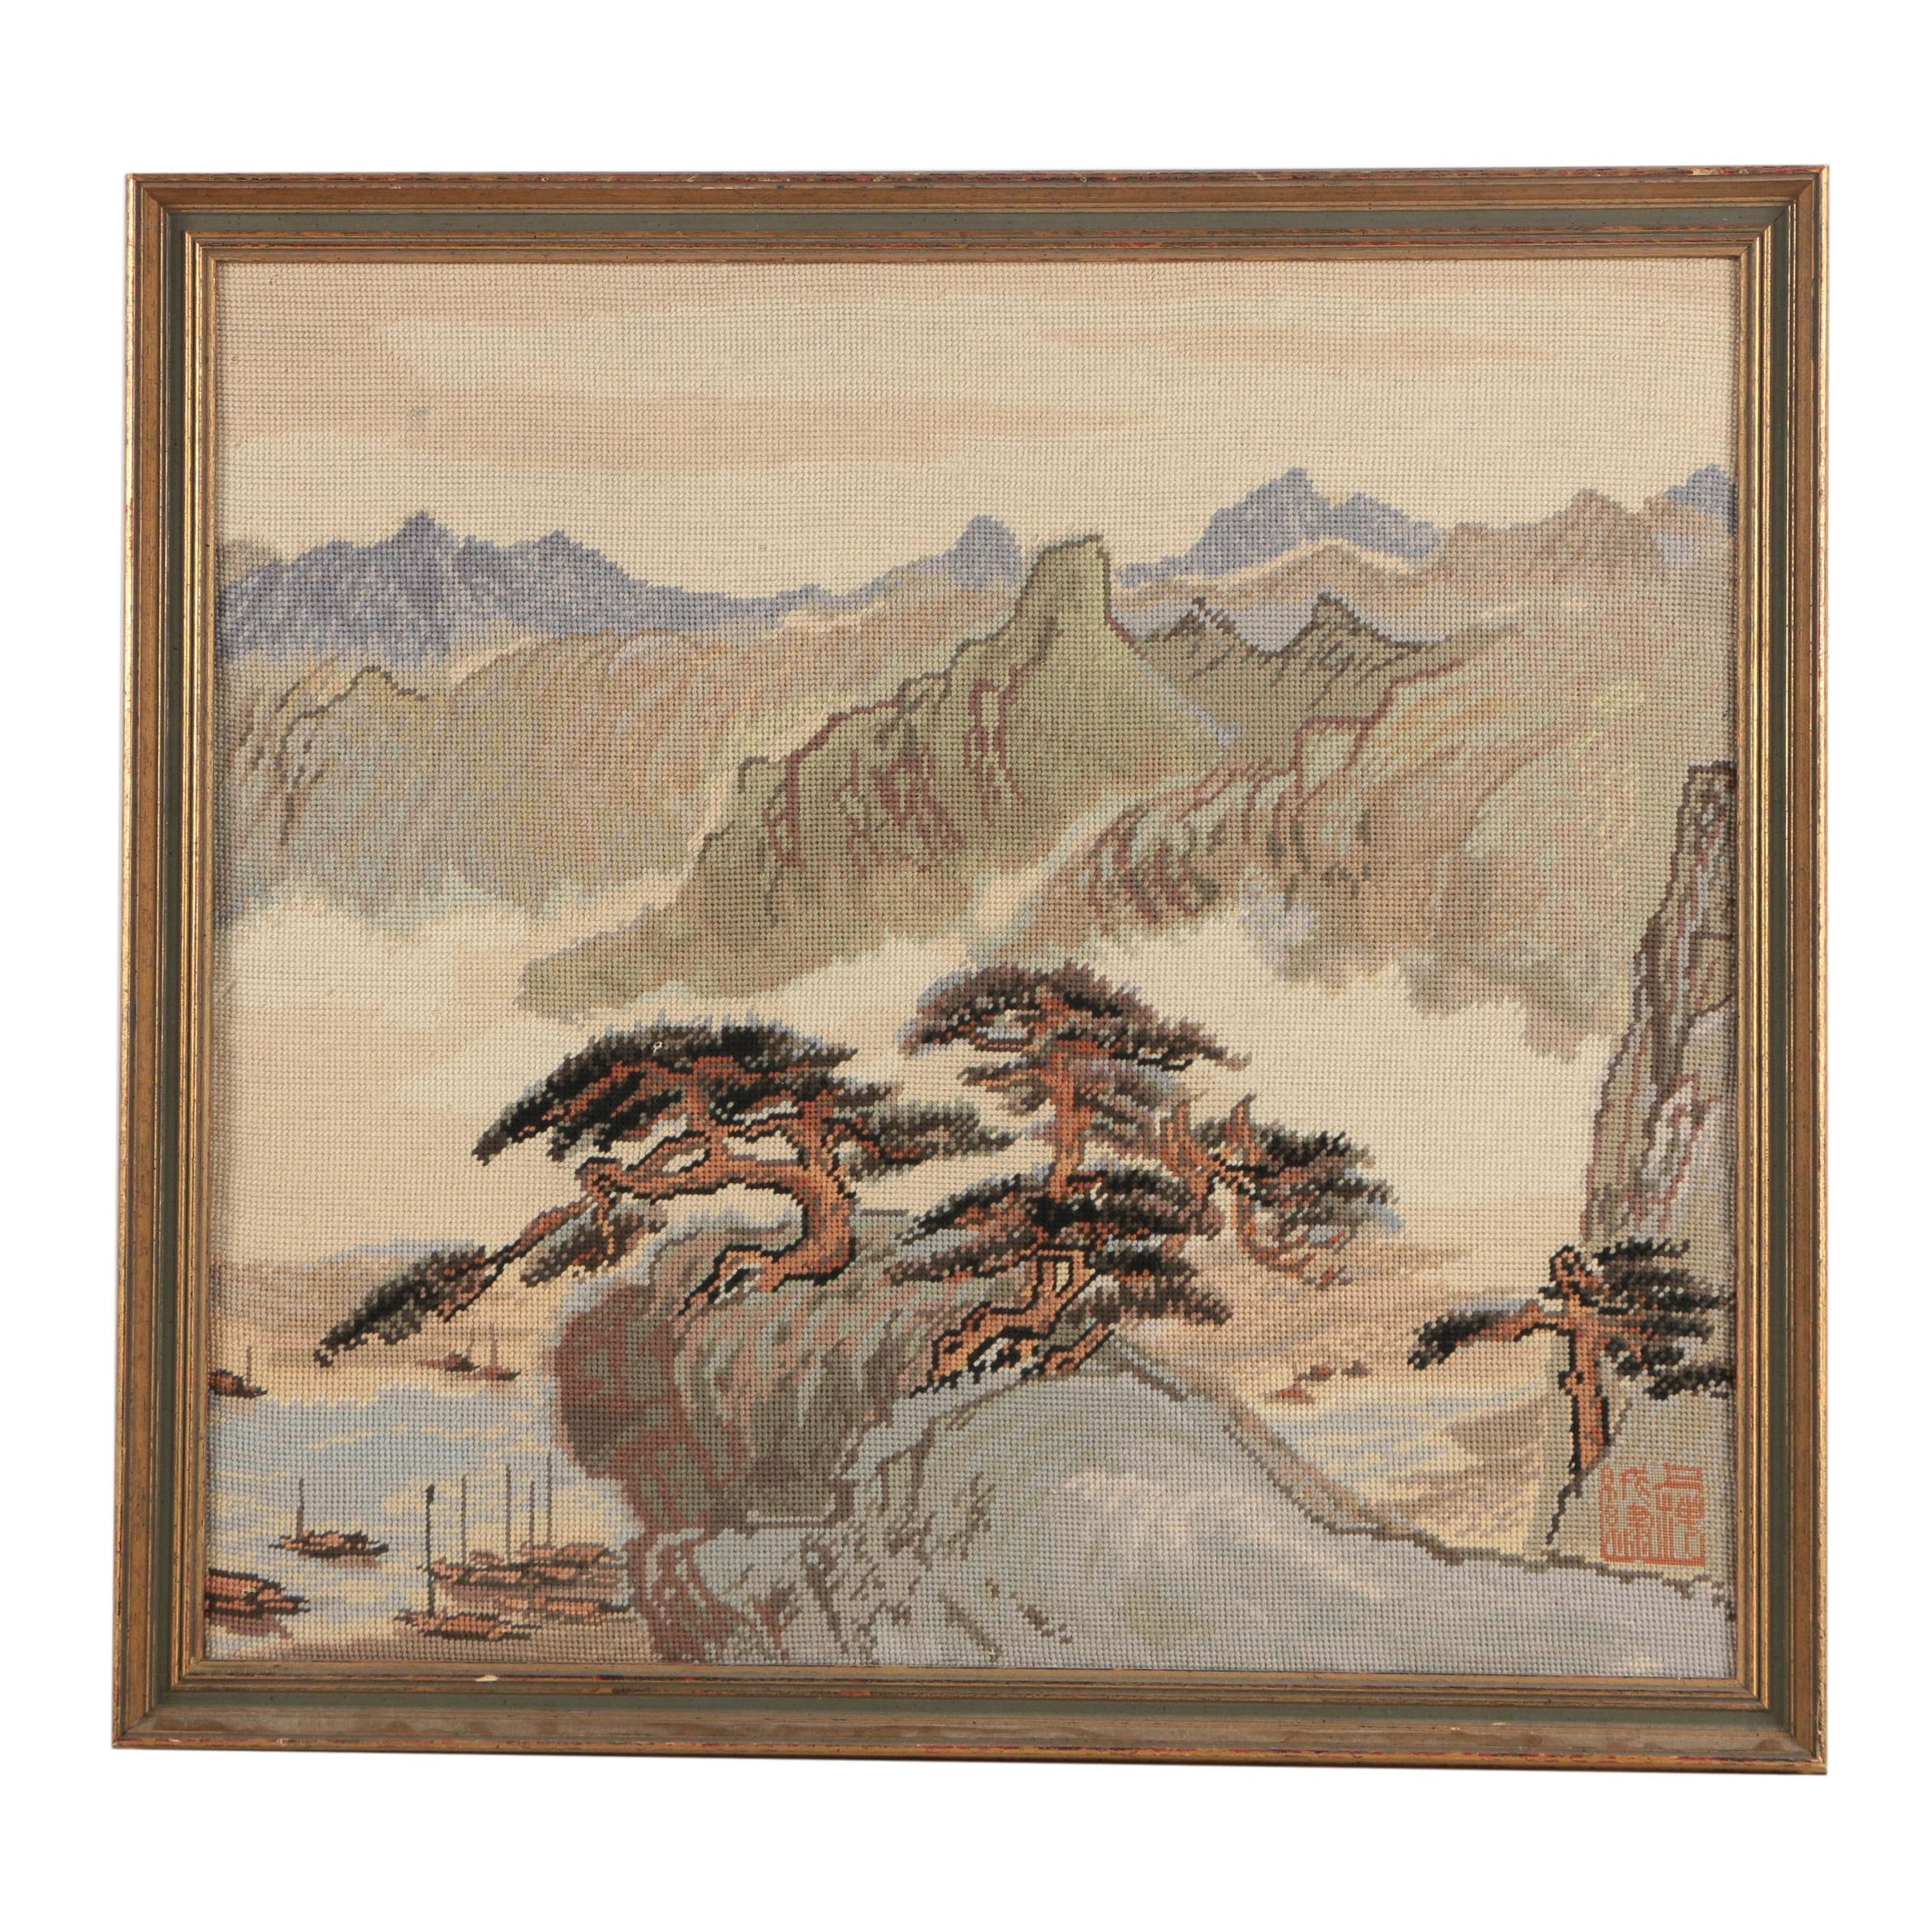 Chinese Inspired Needlepoint of a Mountainous Landscape